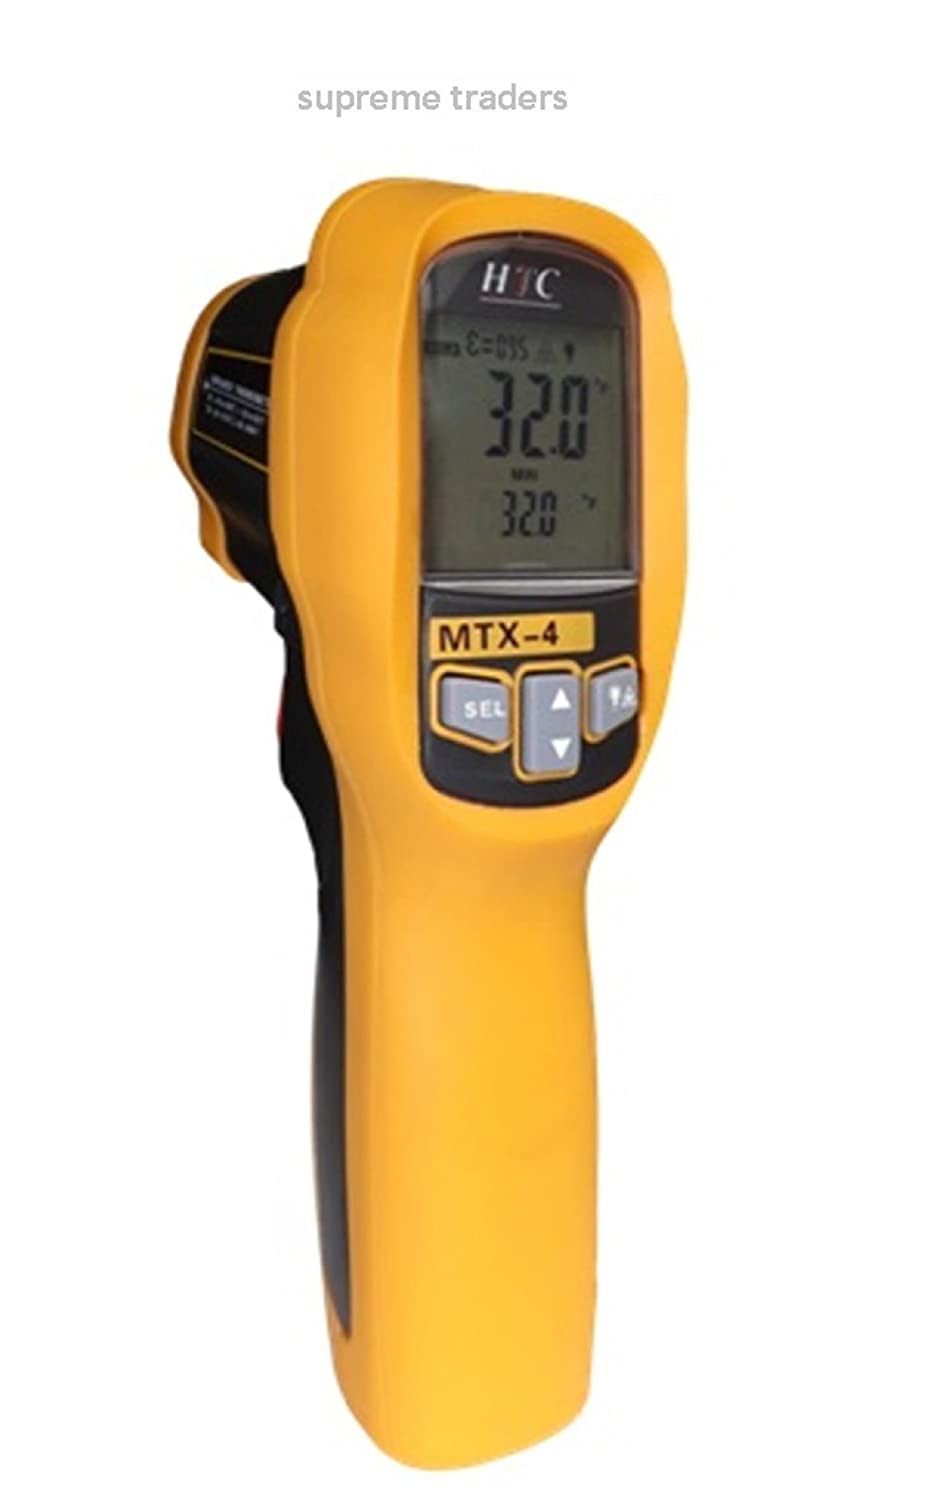 HTC MTX-4 Infrared Thermometer